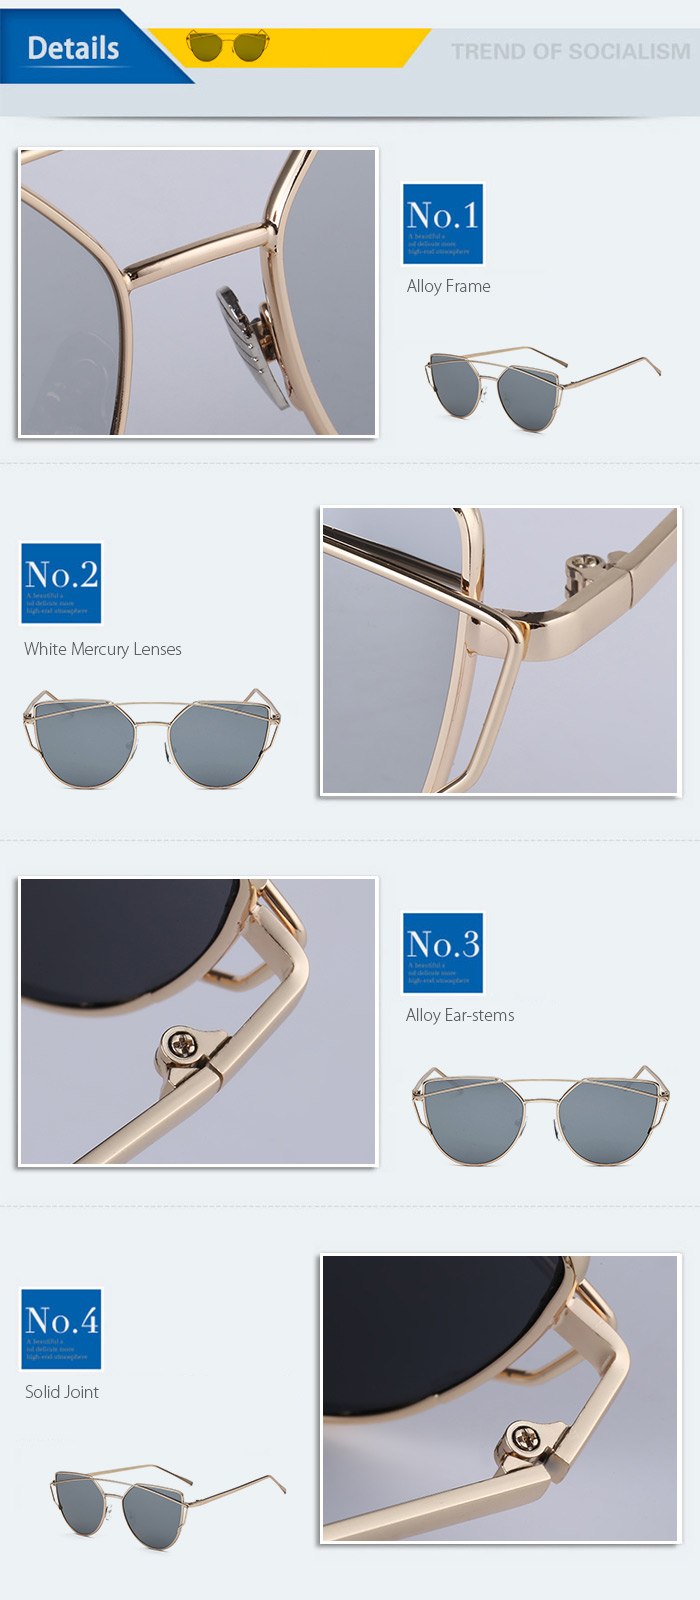 SENLAN 2223C8 Sunglasses Golden Frame PC Lens